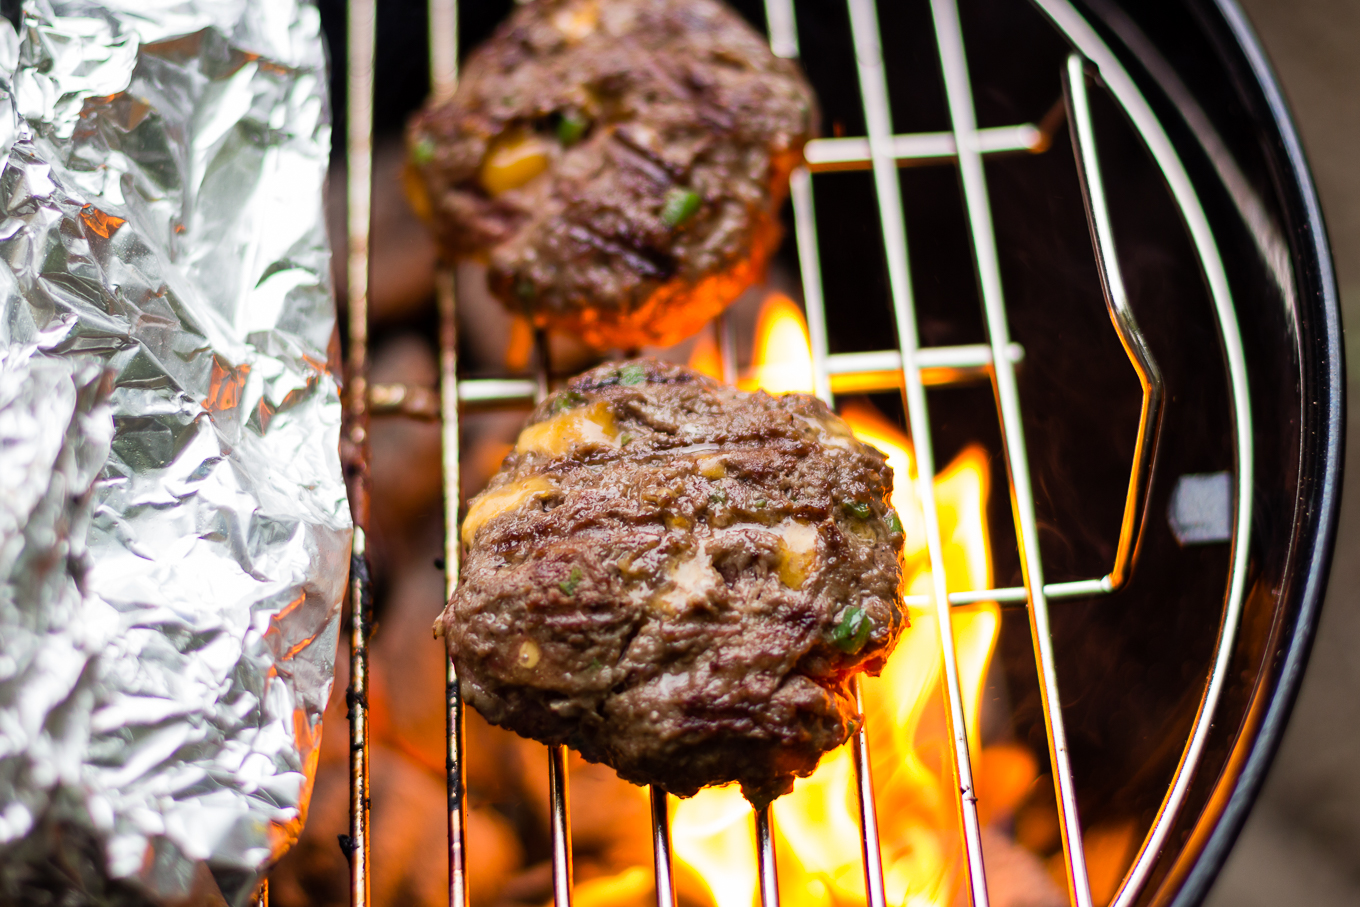 burger recipe, how to grill, nfl, tailgate recipes, how to use charcoal